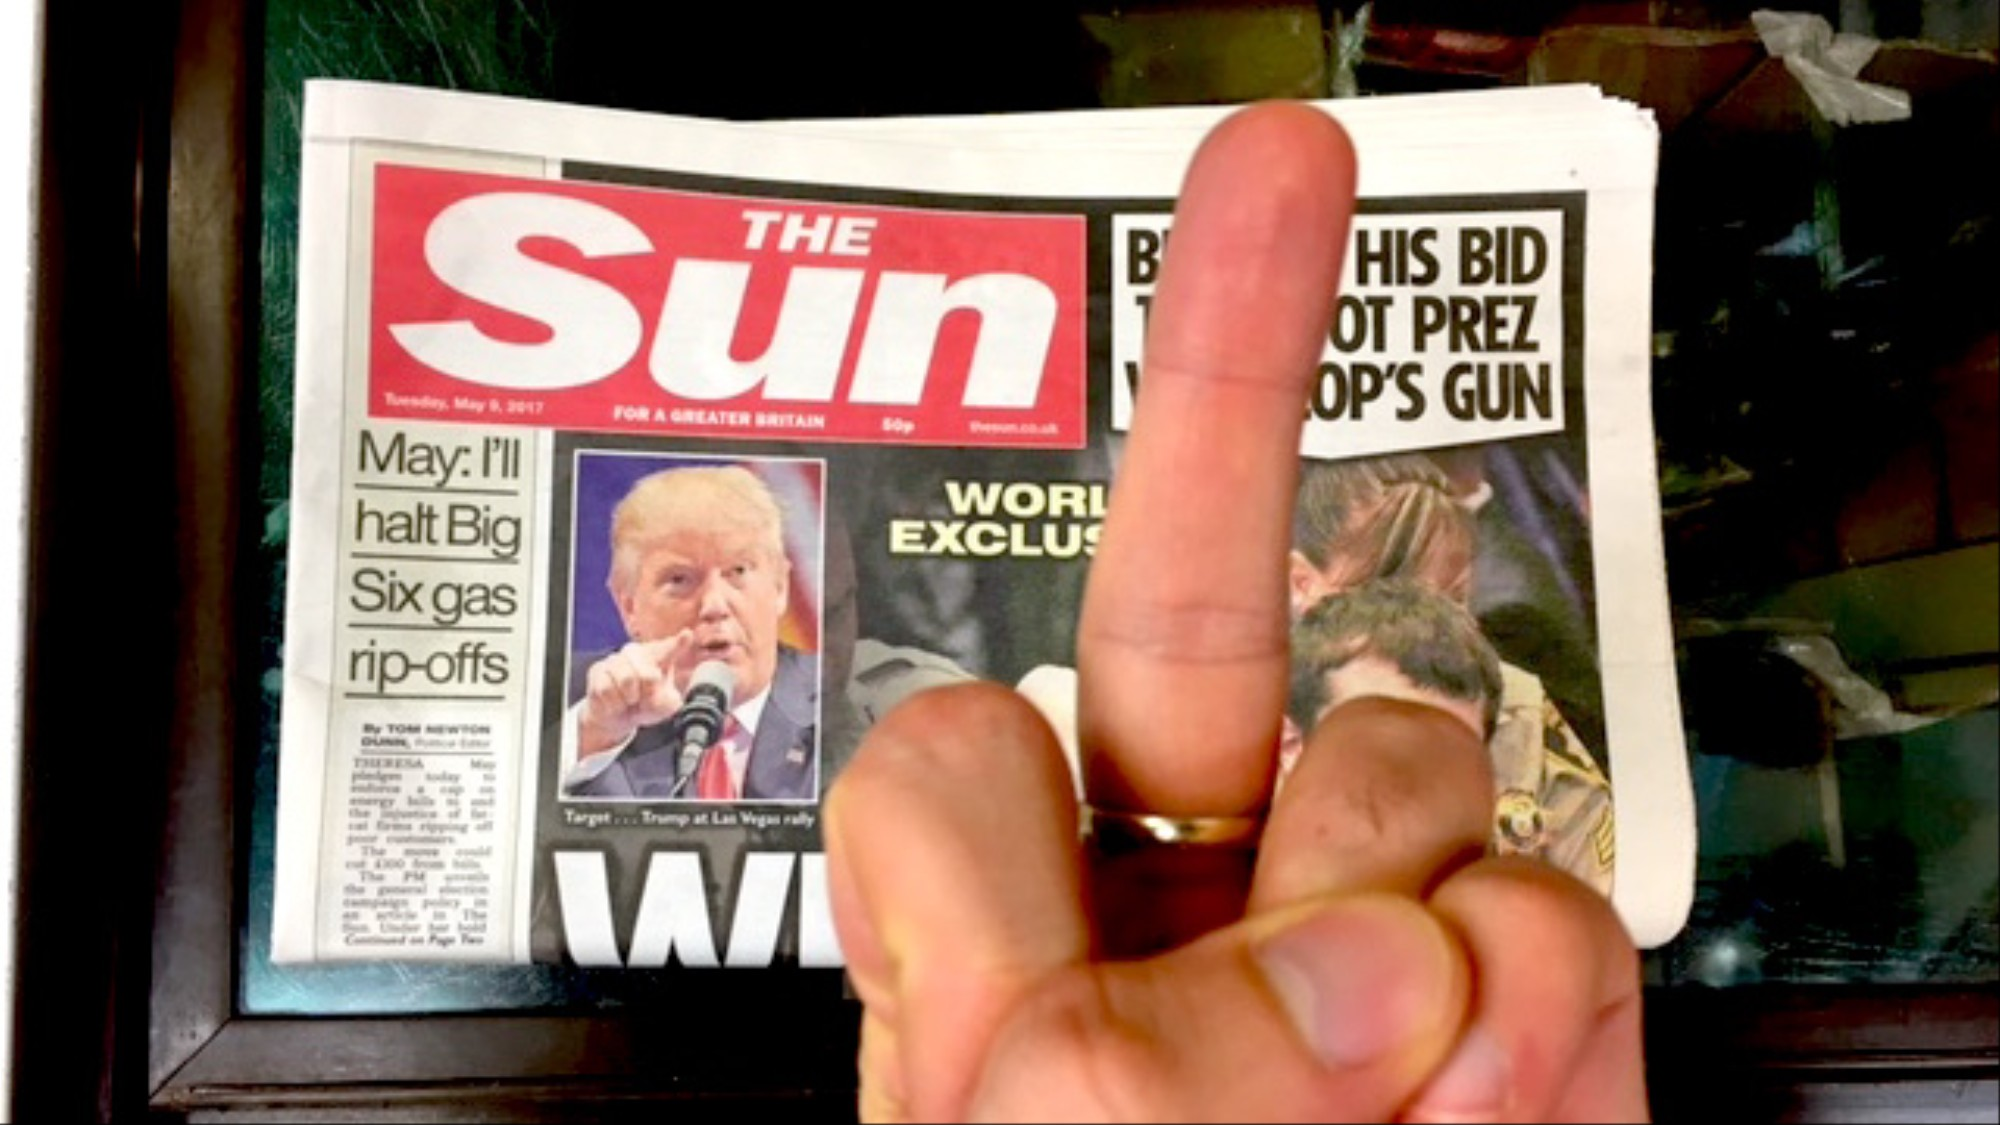 Liverpool Vs The Sun: How the City Rid Itself of the UK's Biggest